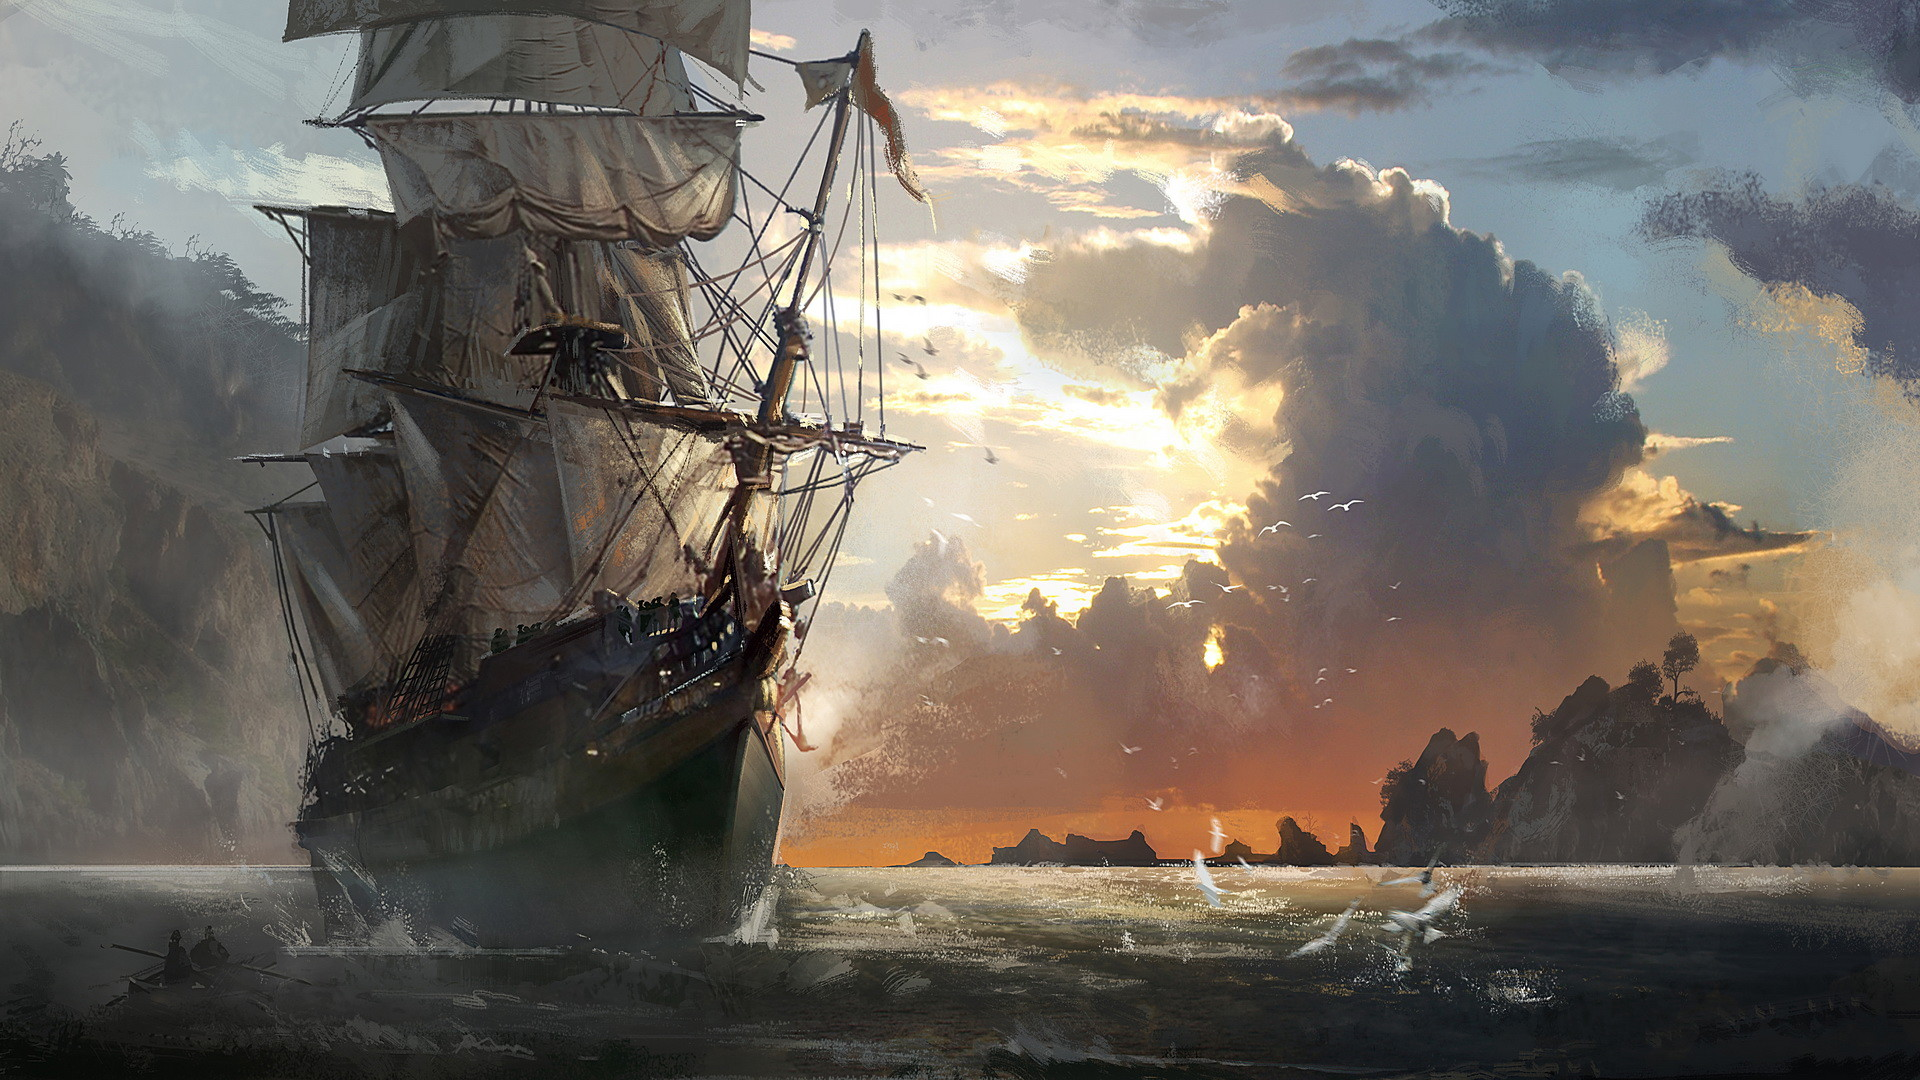 1920x1080 Ghost Pirate Ship Wallpapers Hd